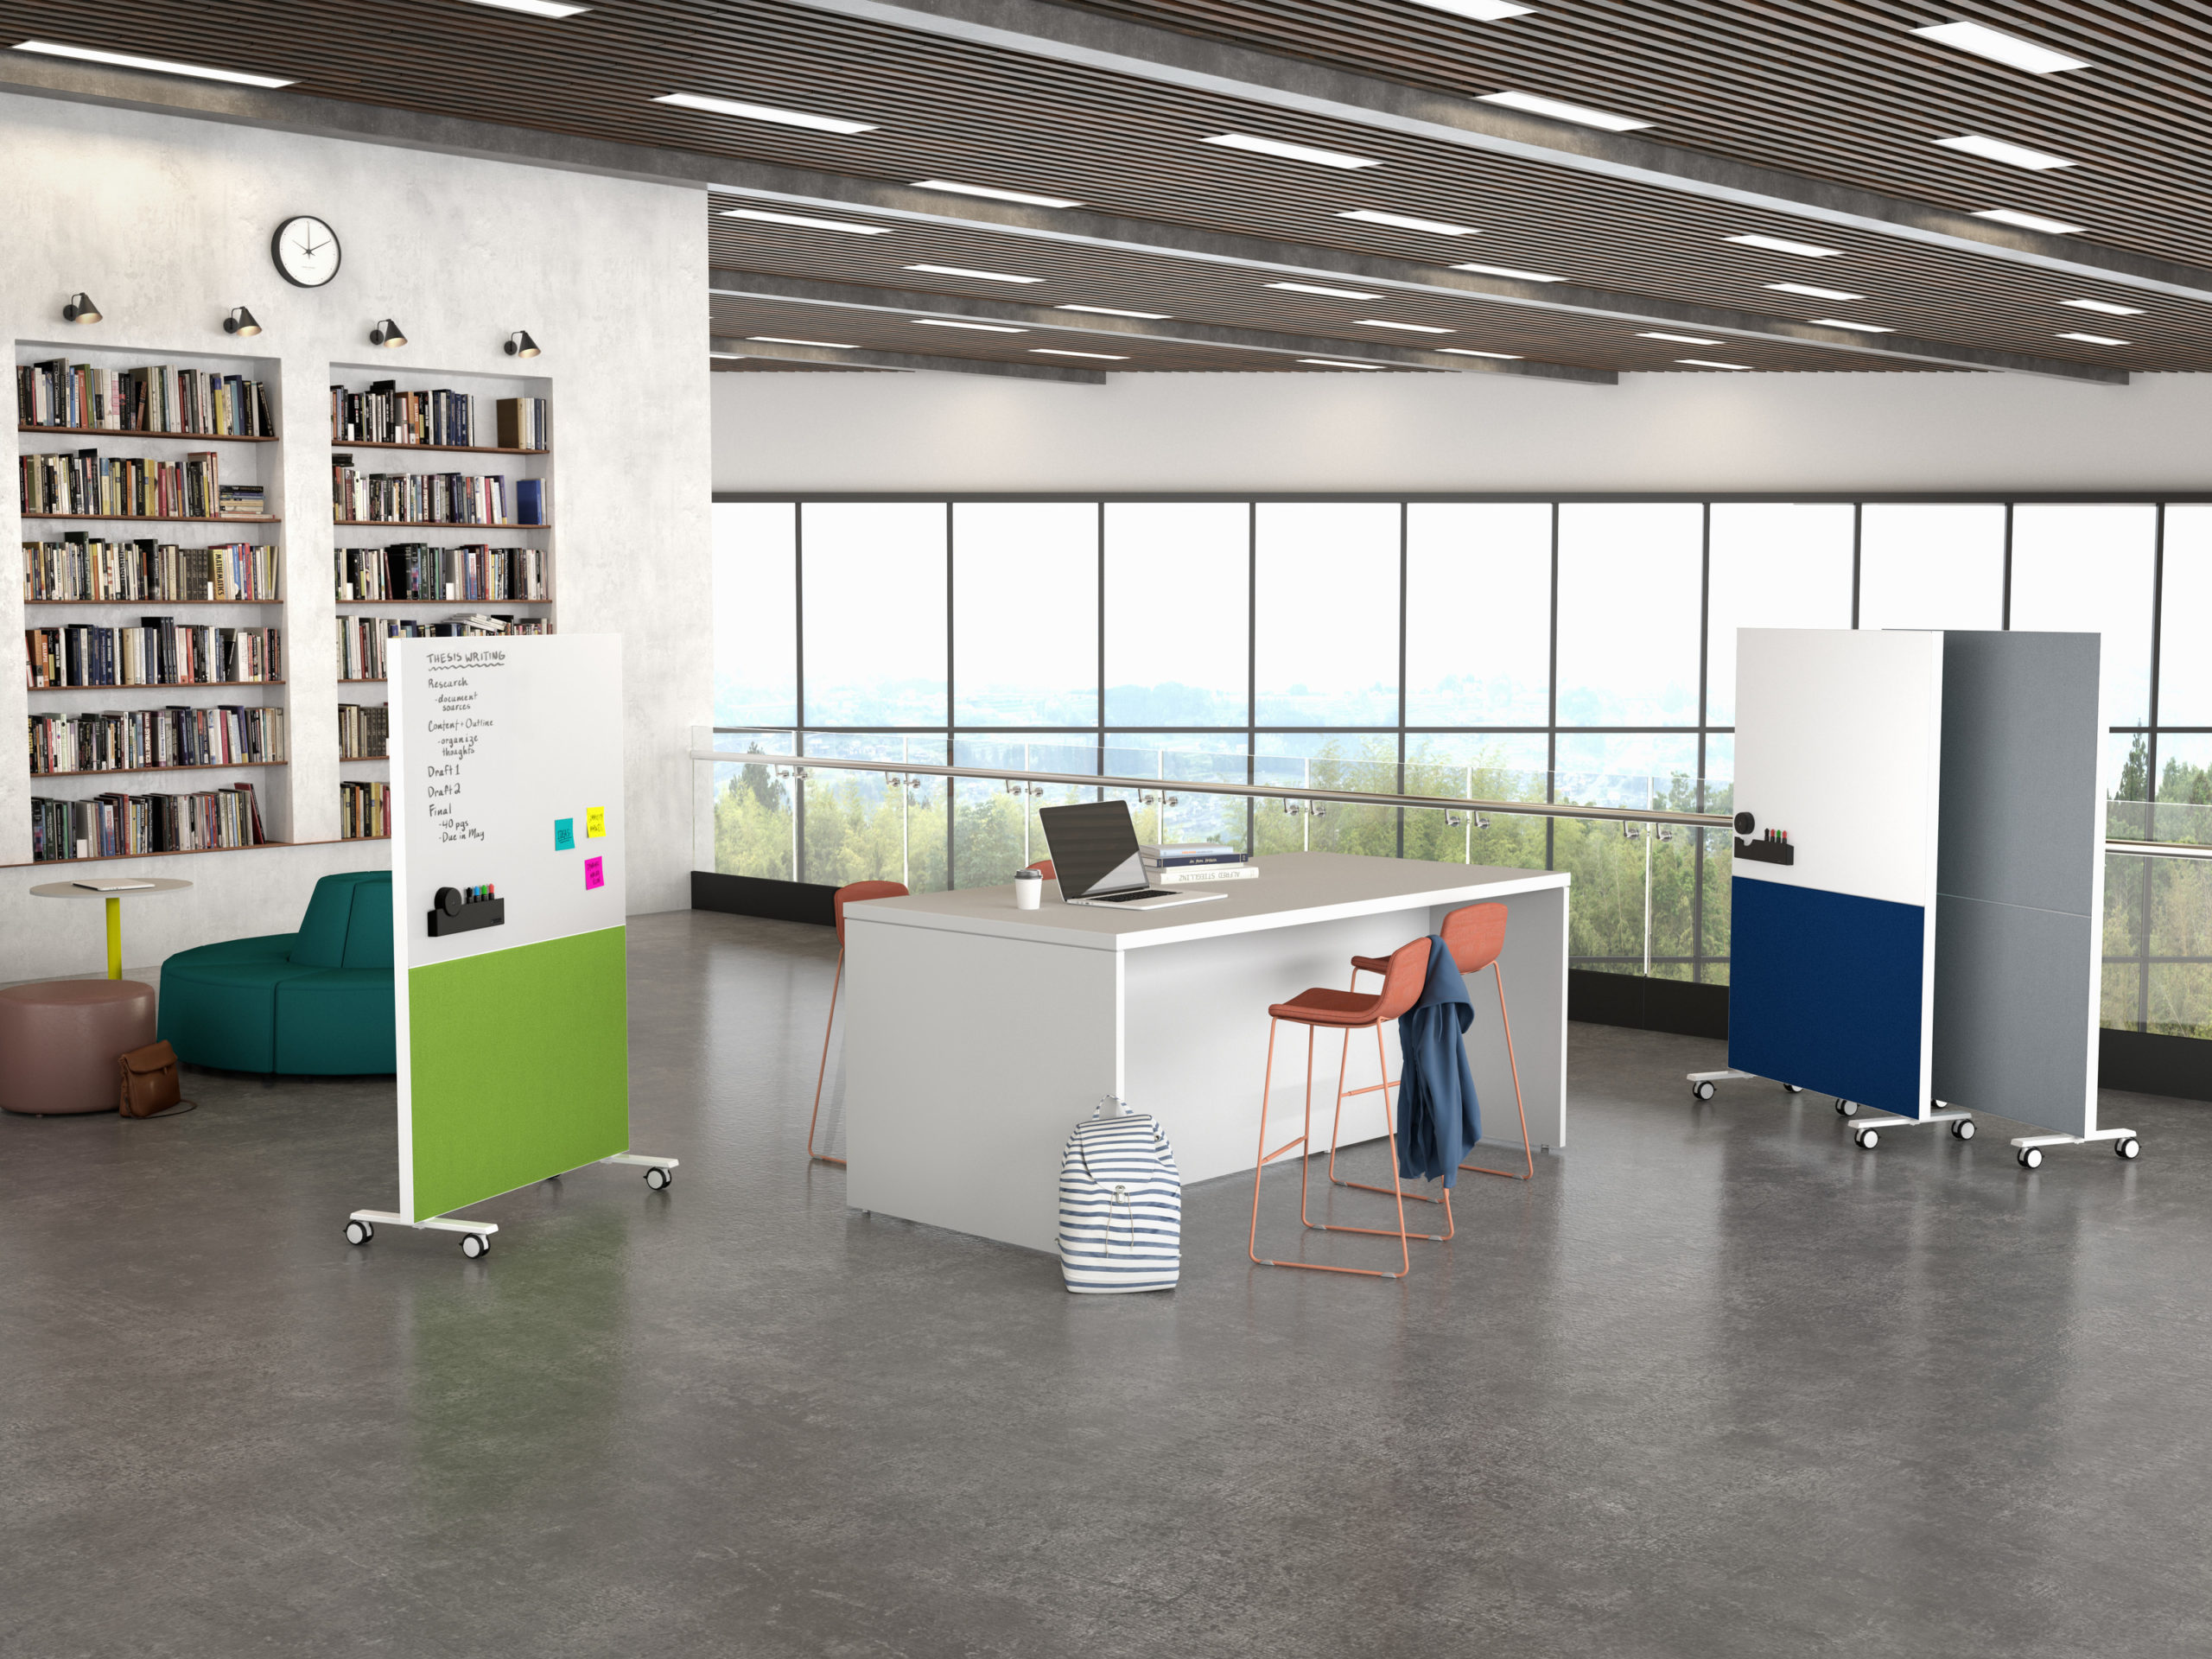 Collaborative office area with large table, stools, and mobile whiteboards